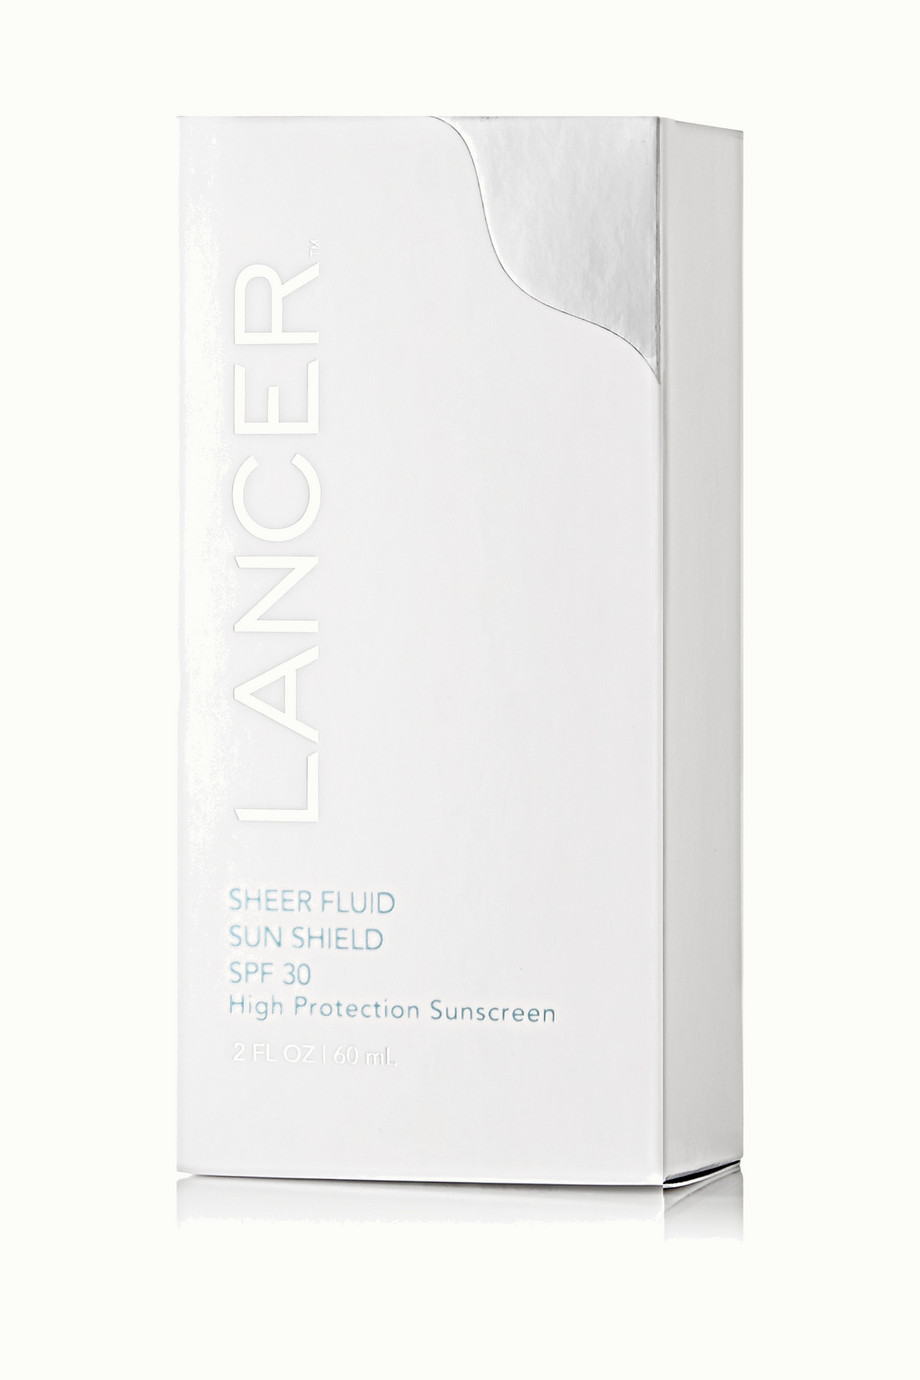 Lancer Sheer Fluid Sun Shield SPF30, 60ml